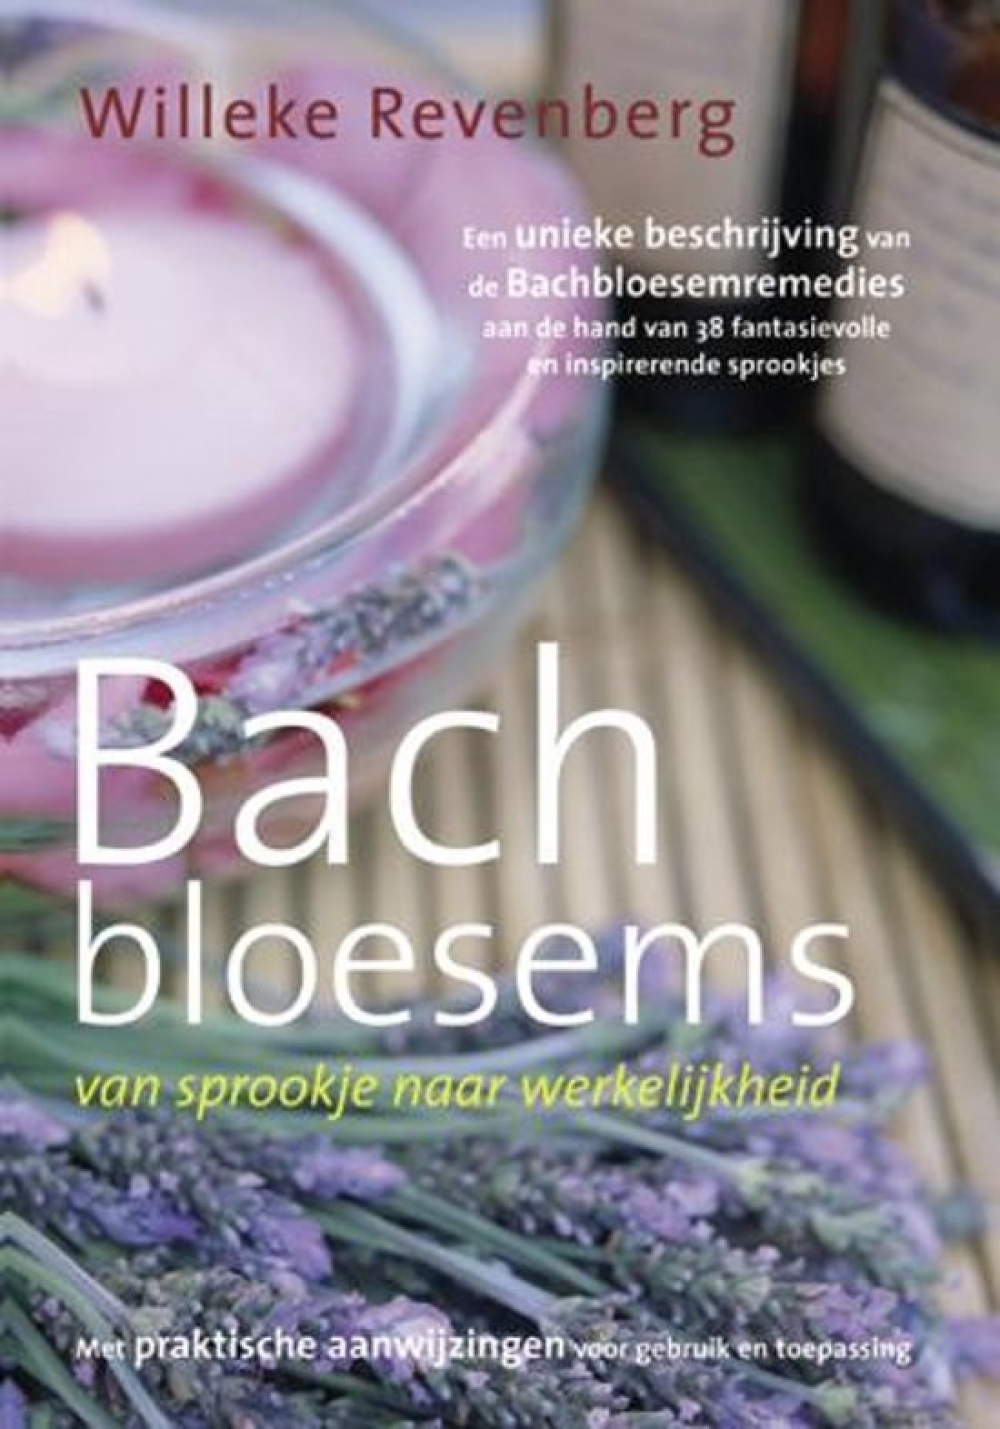 Bachbloesems